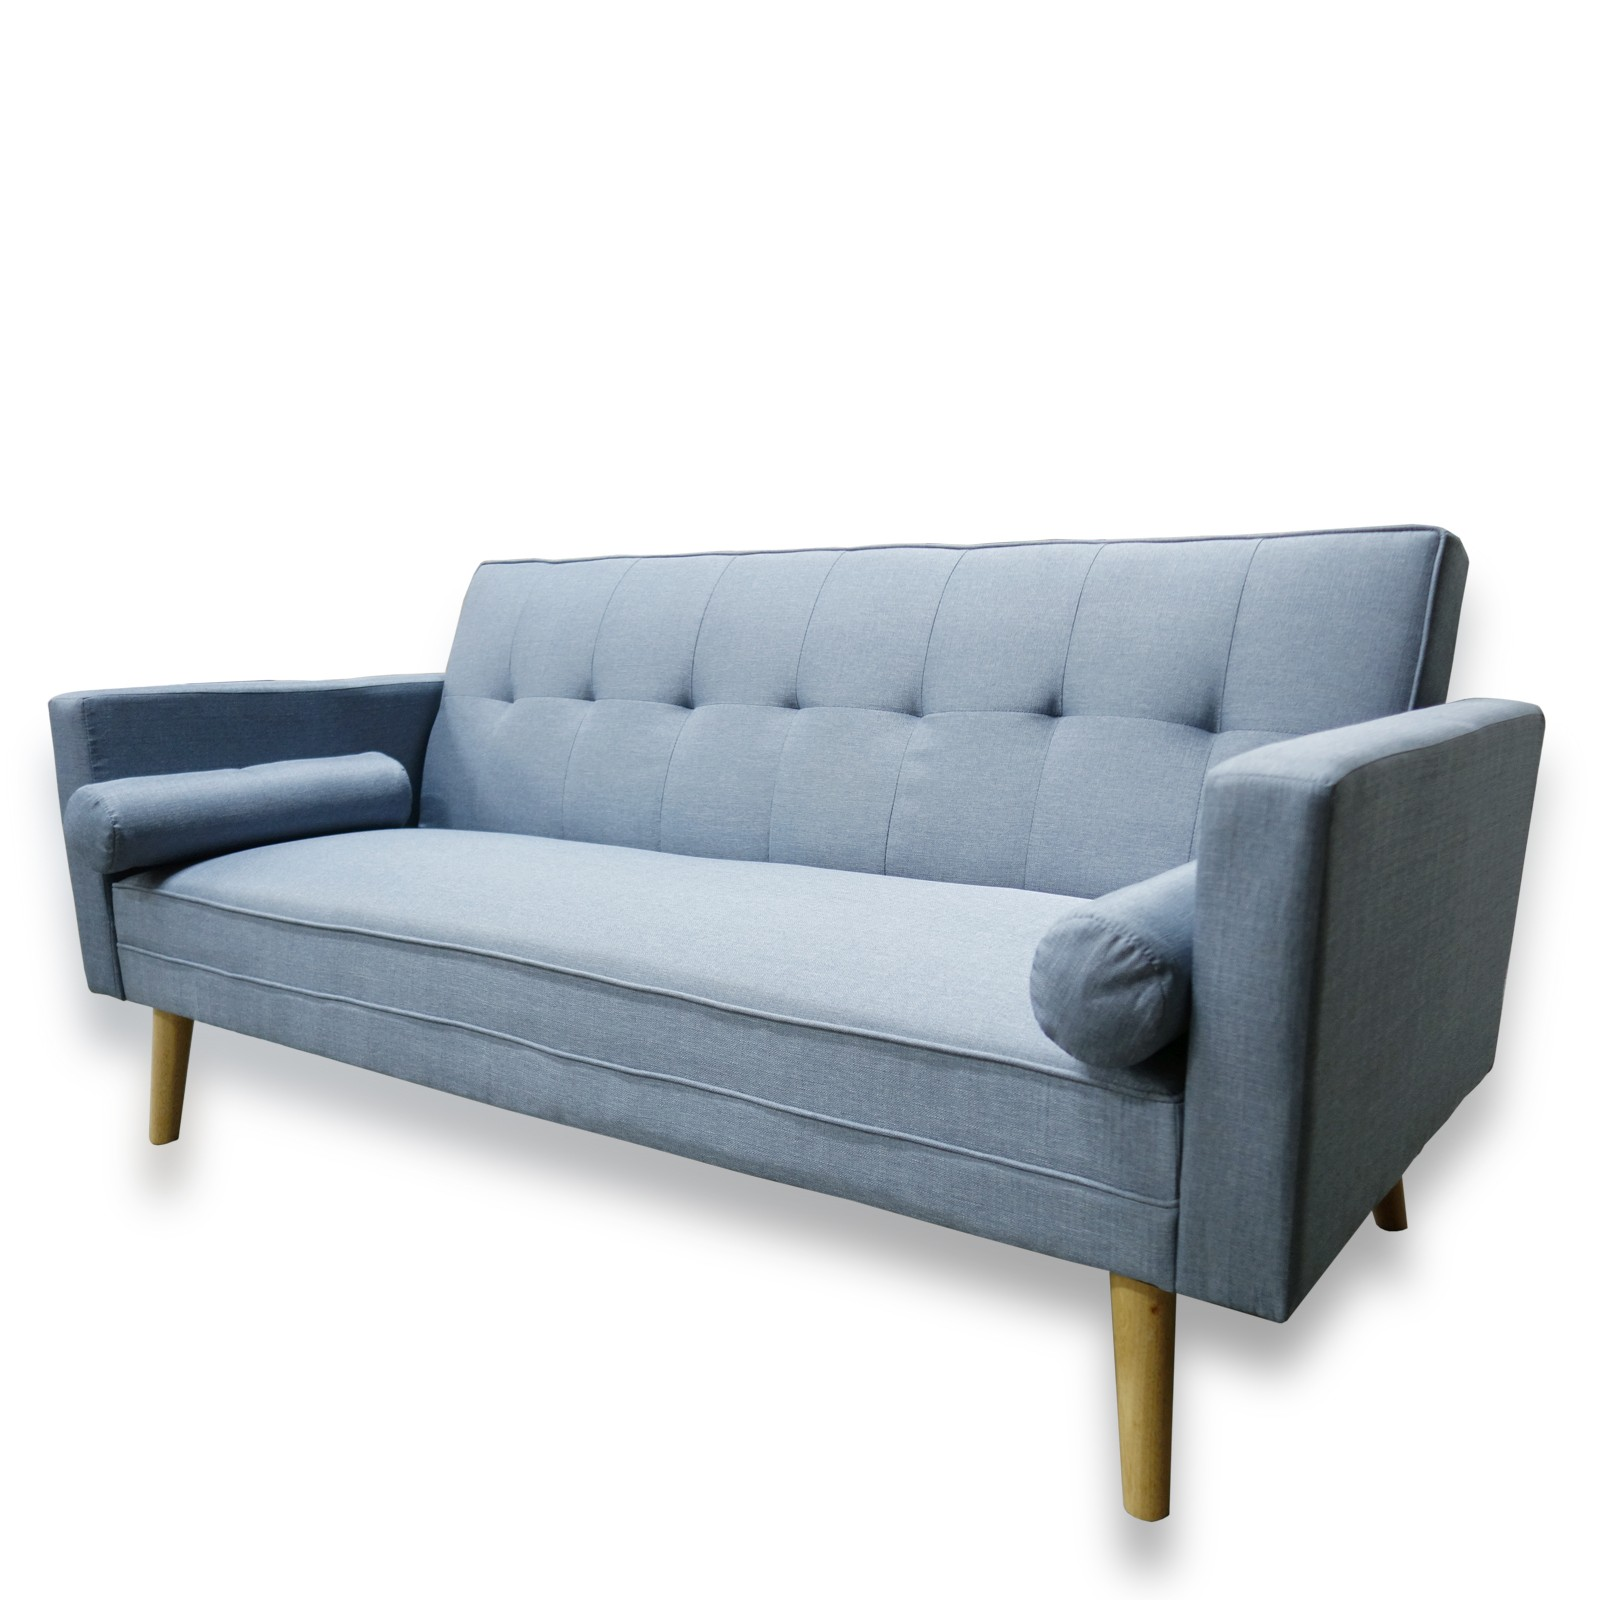 Click Clack sofa Sensational Amy Contemporary Scandinavian Fabric Clack 3 Seater sofa Bed Collection